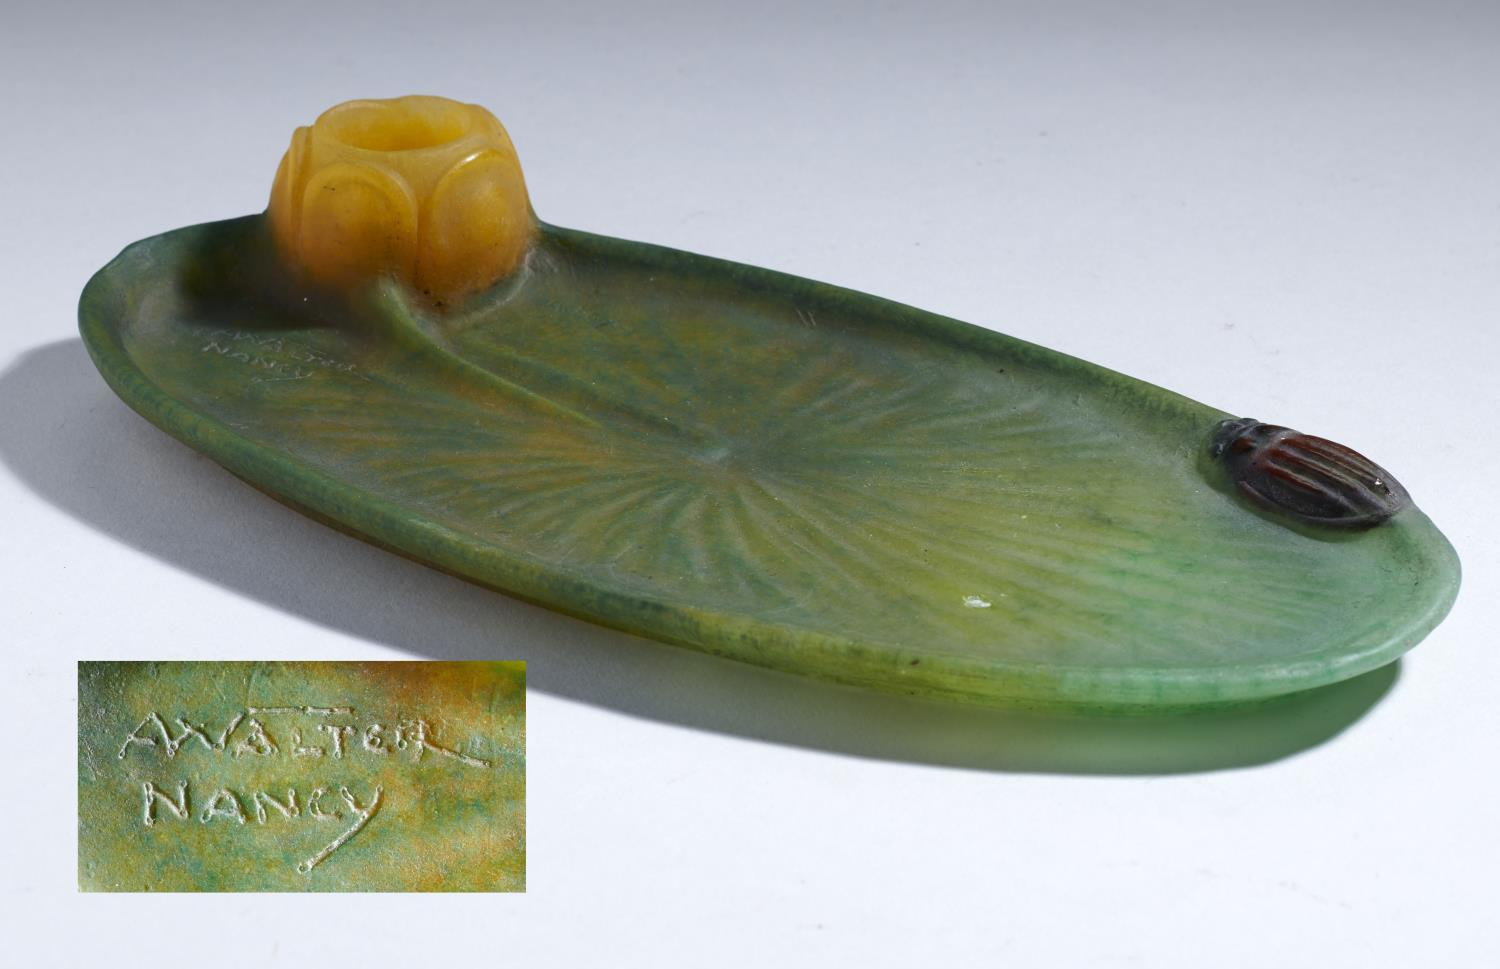 Lot 218 - AN AMALRIC WALTER PATE DE VERRE WATERLILY AND BEETLE TRAY, C1920 22cm l, marked A WALTER NANCY and